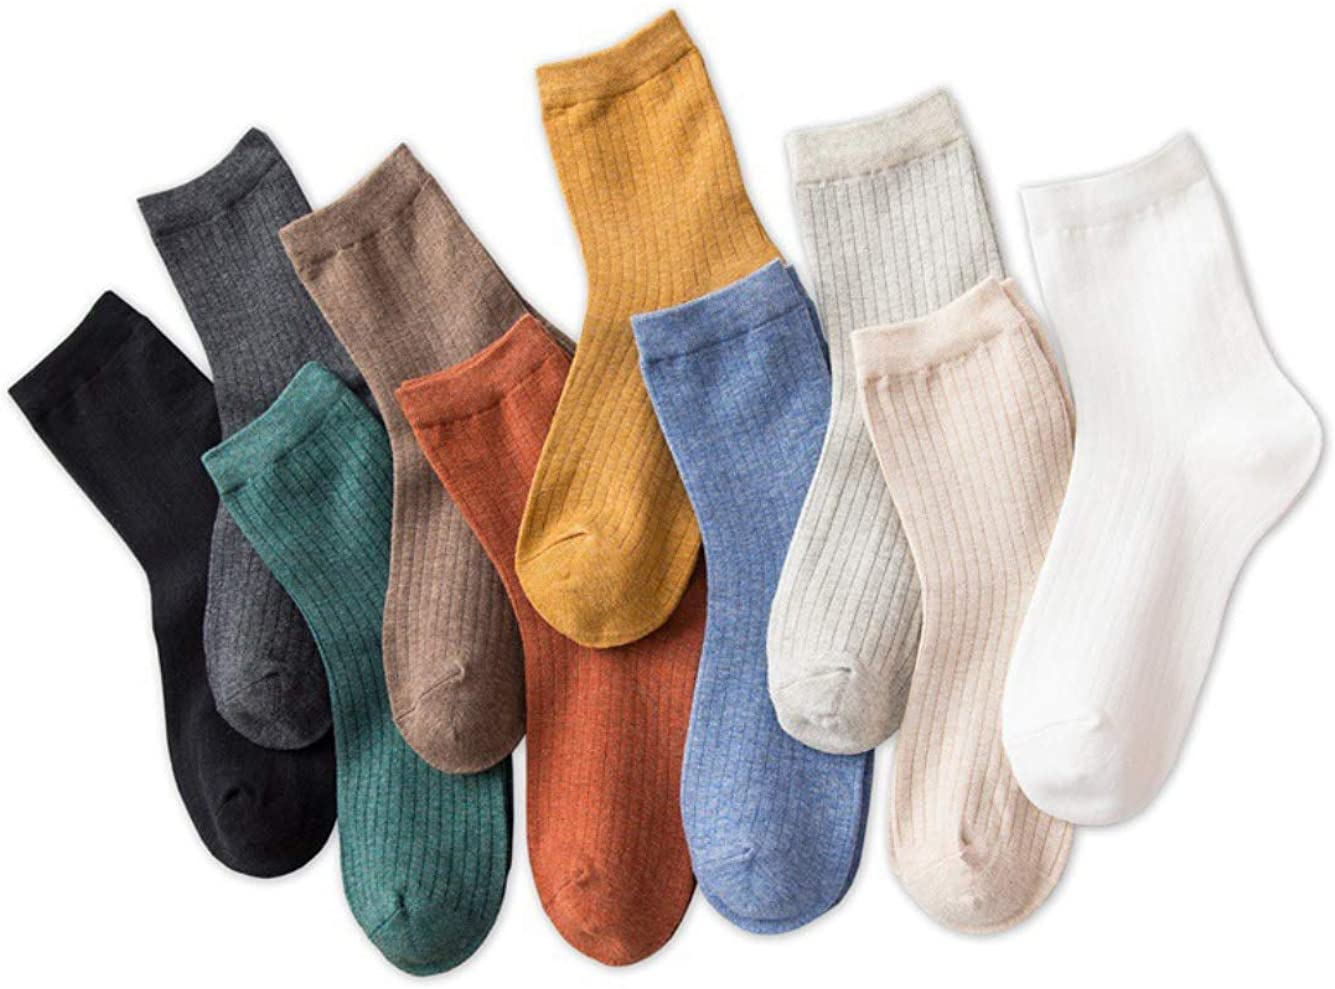 TeenFighter 10 Pairs of Comfortable Casual Cotton Socks for Women, Crew Size for Sports, Solid Color Stretch Socks for Girls